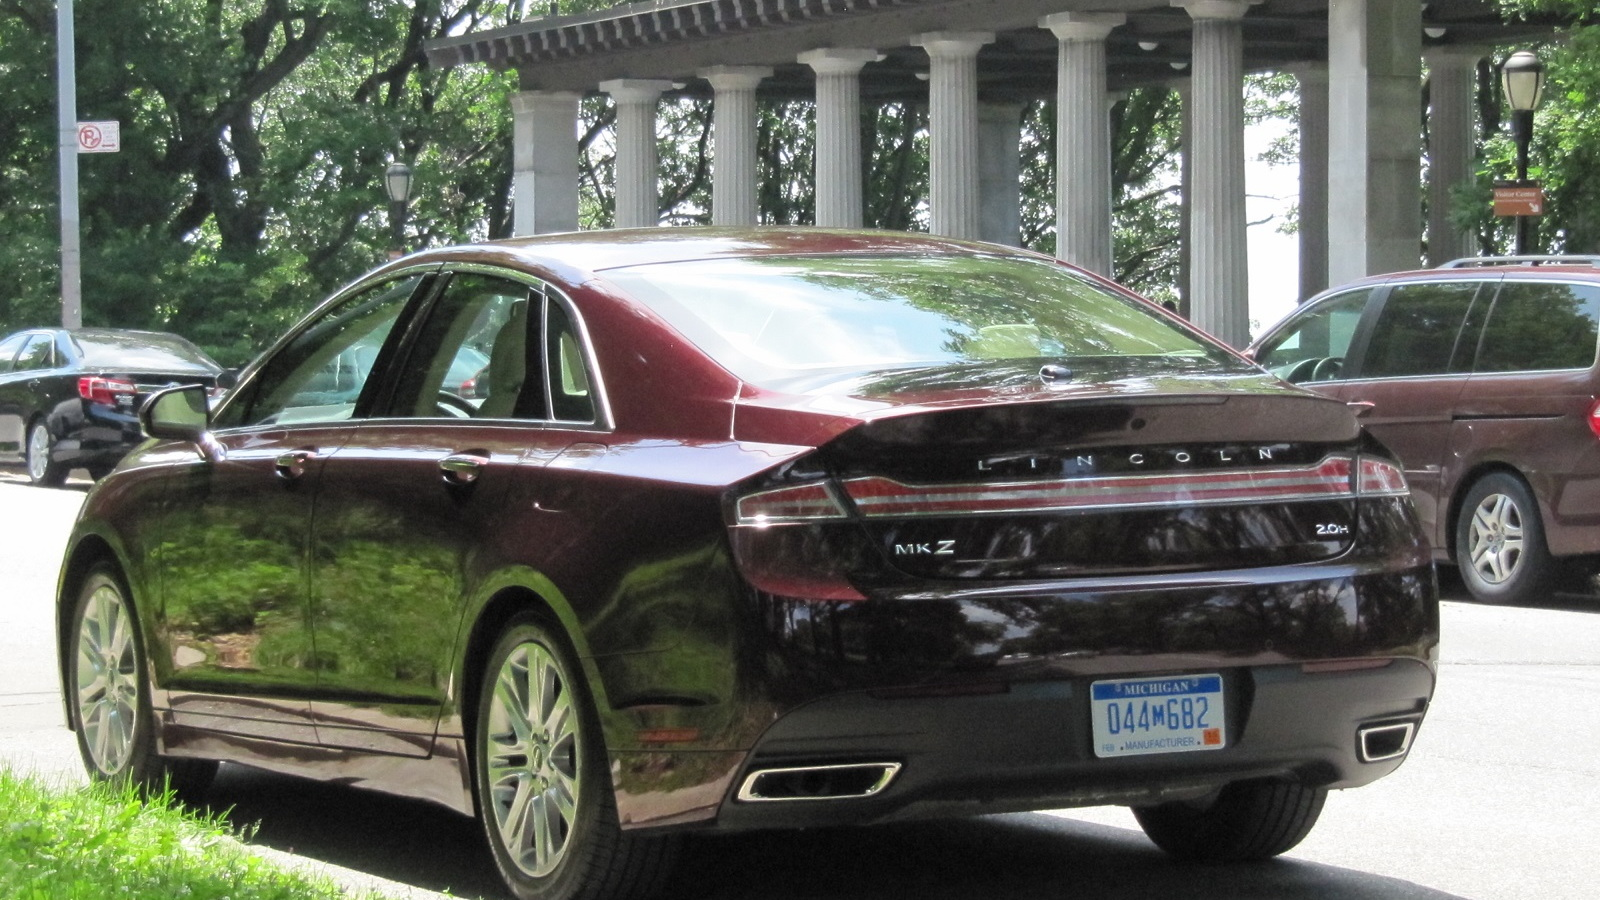 2013 Lincoln MKZ Hybrid, New York City, June 2013